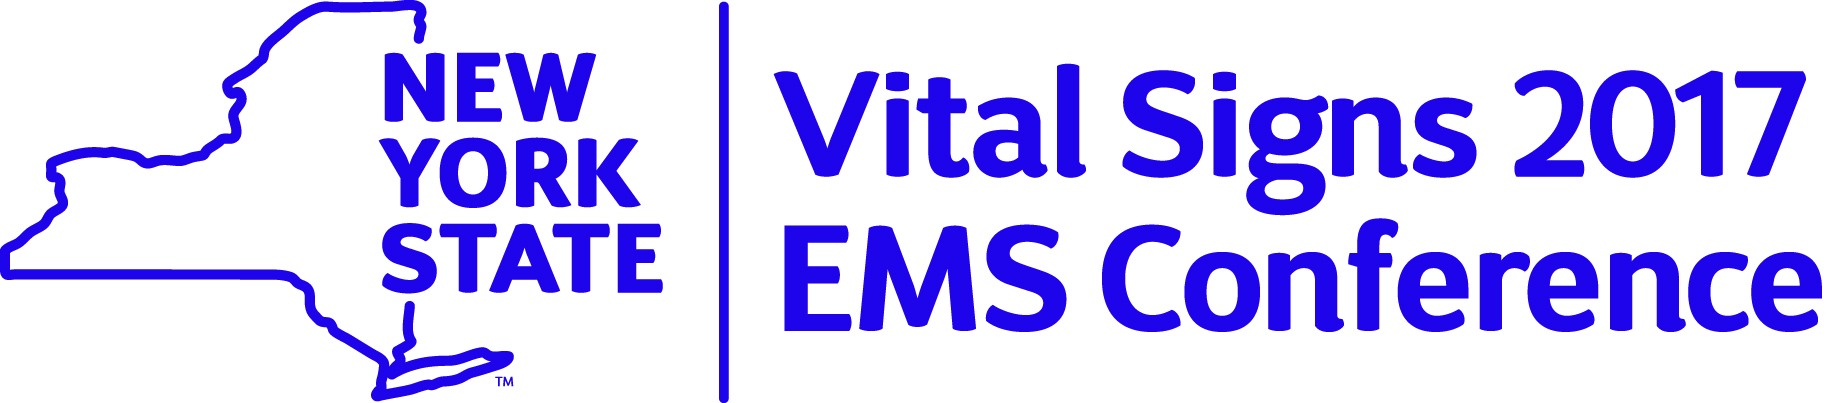 Vital Signs EMS Conference 2017